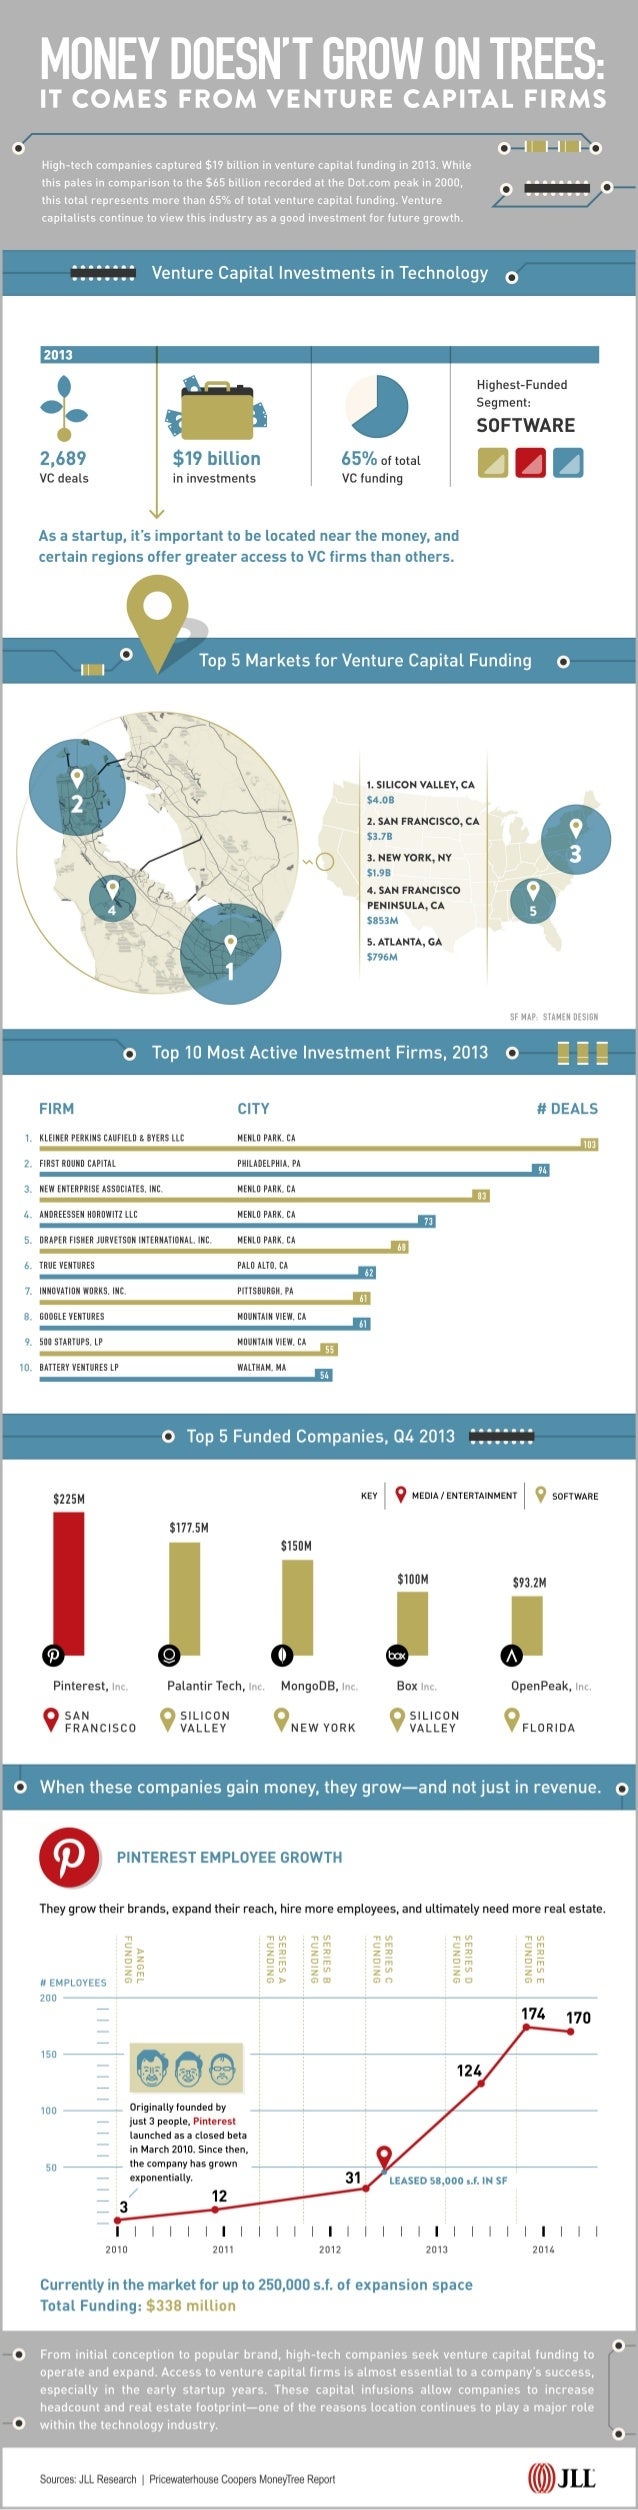 Venture capital investment trends May 2014